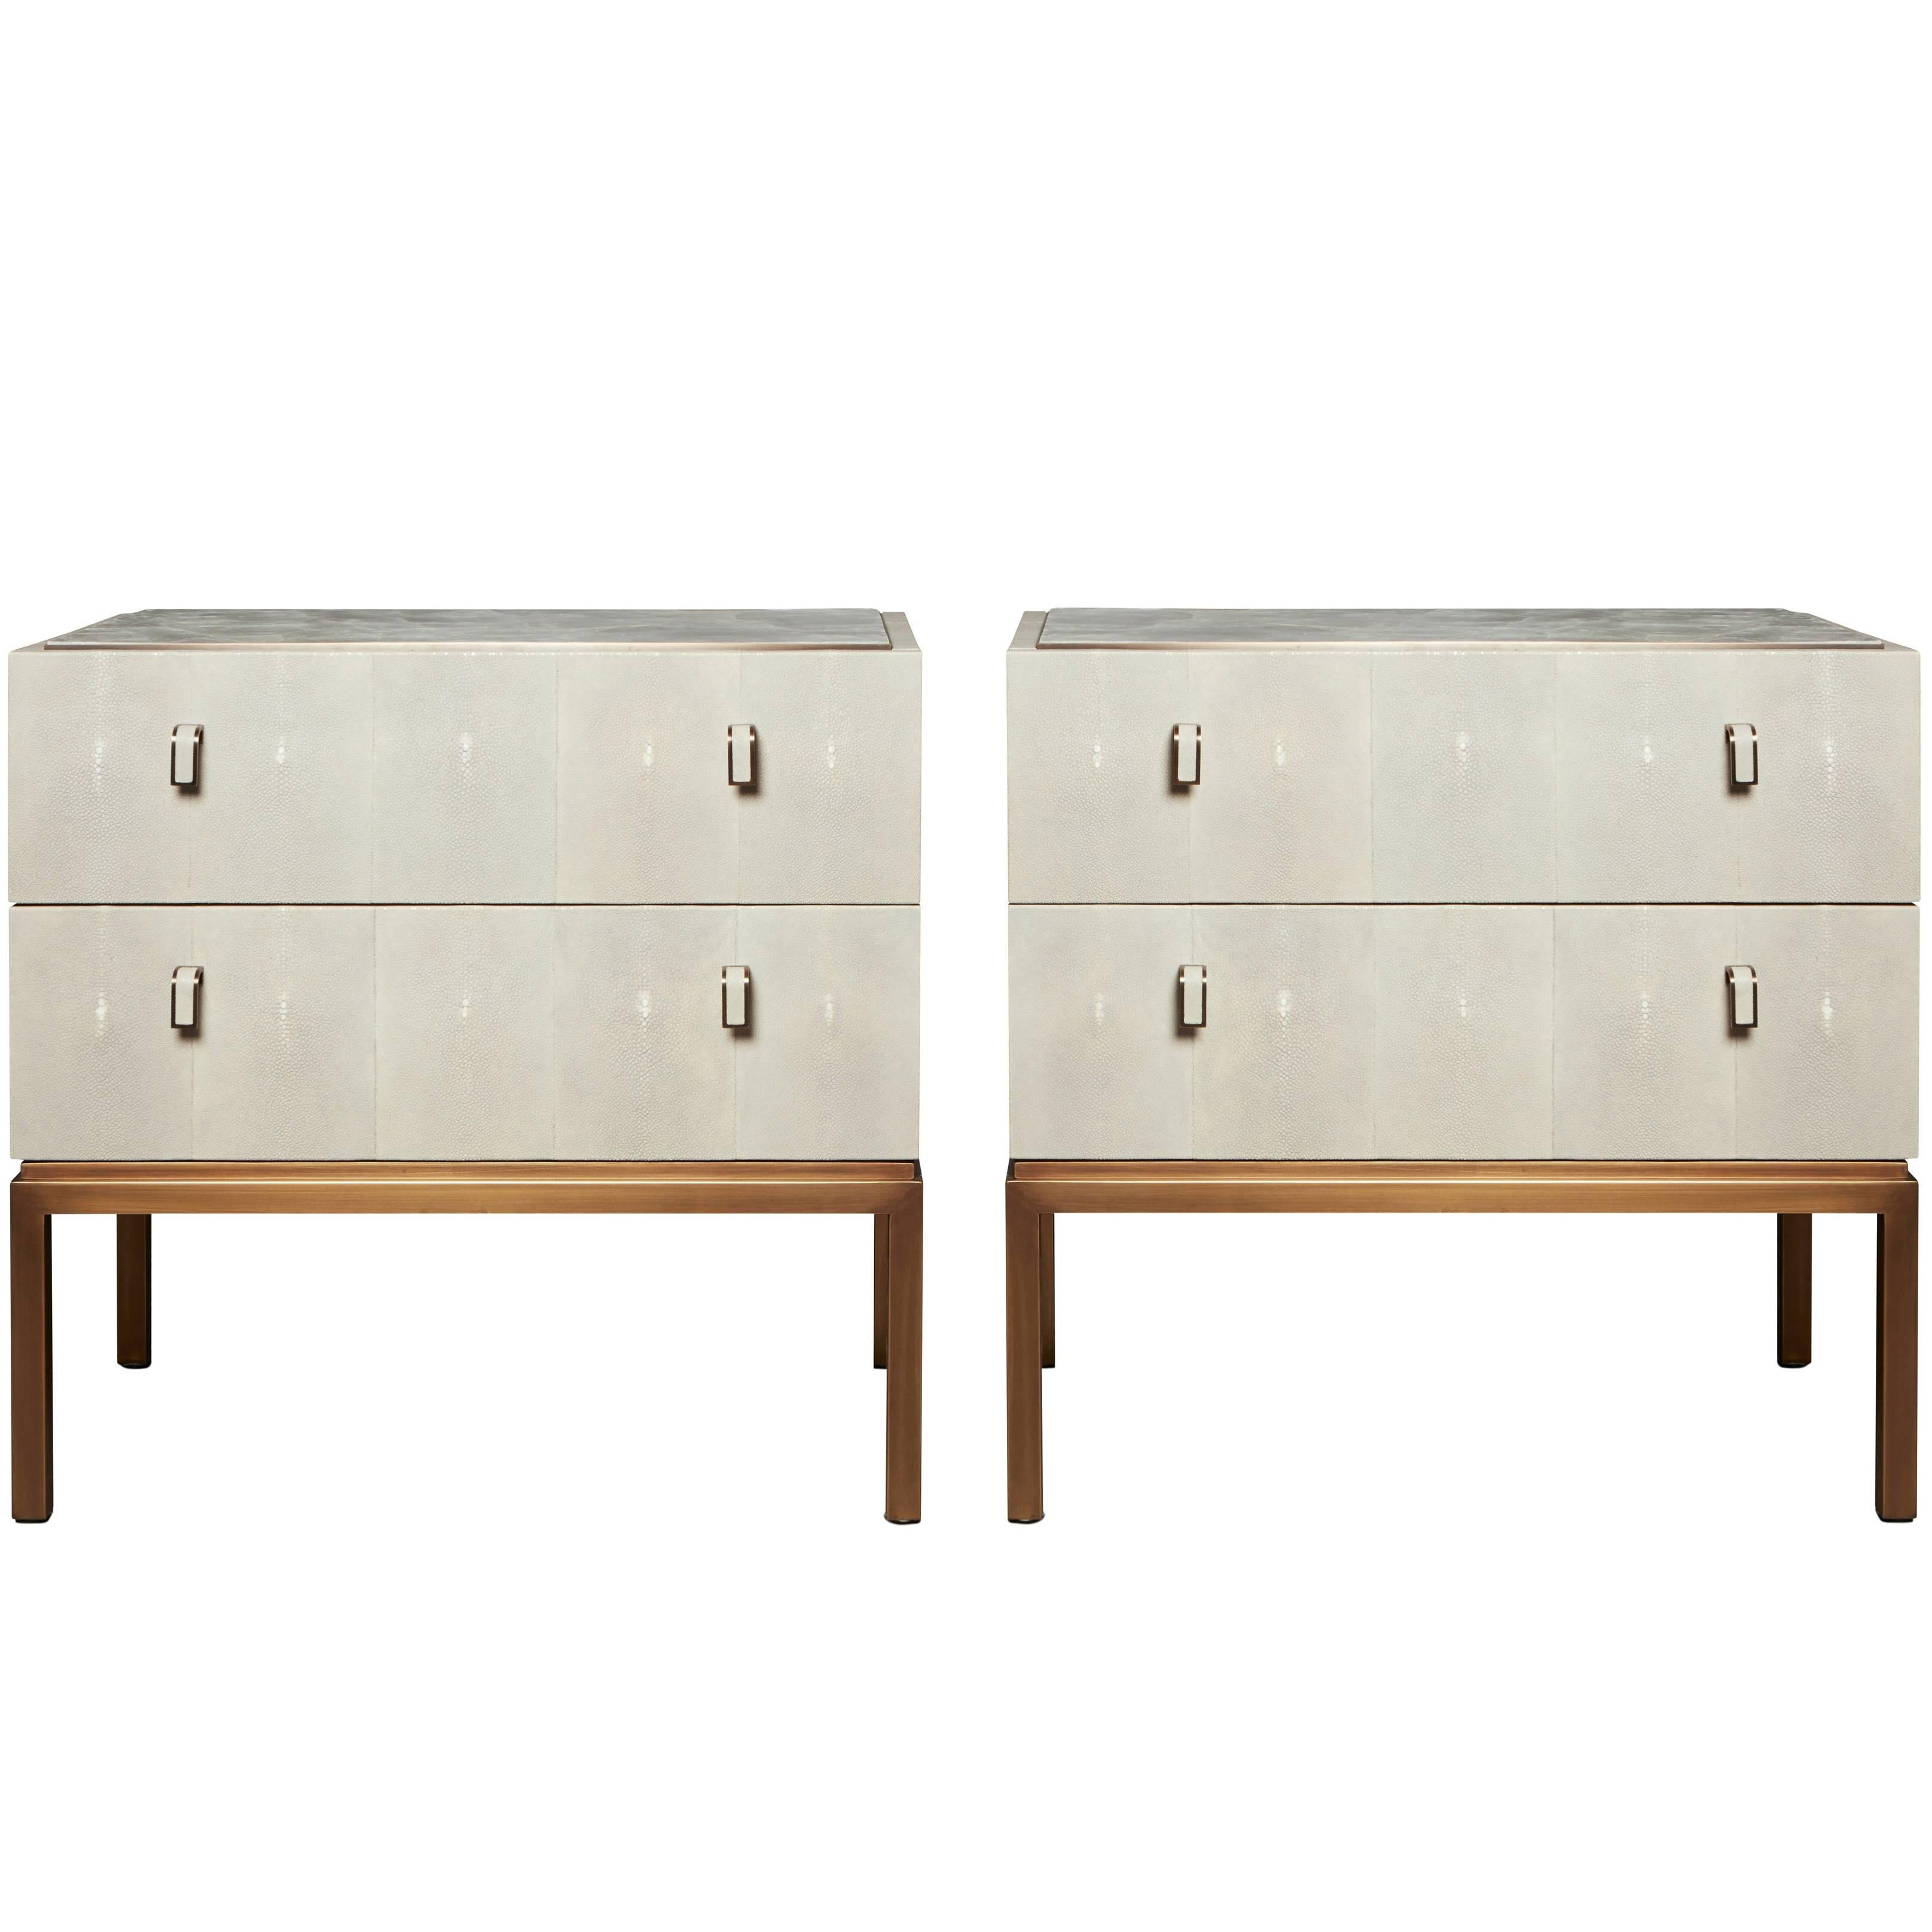 Lovely Water Nightstands With Shagreen, Selenite Crystal And Patinated Bronze, Pair